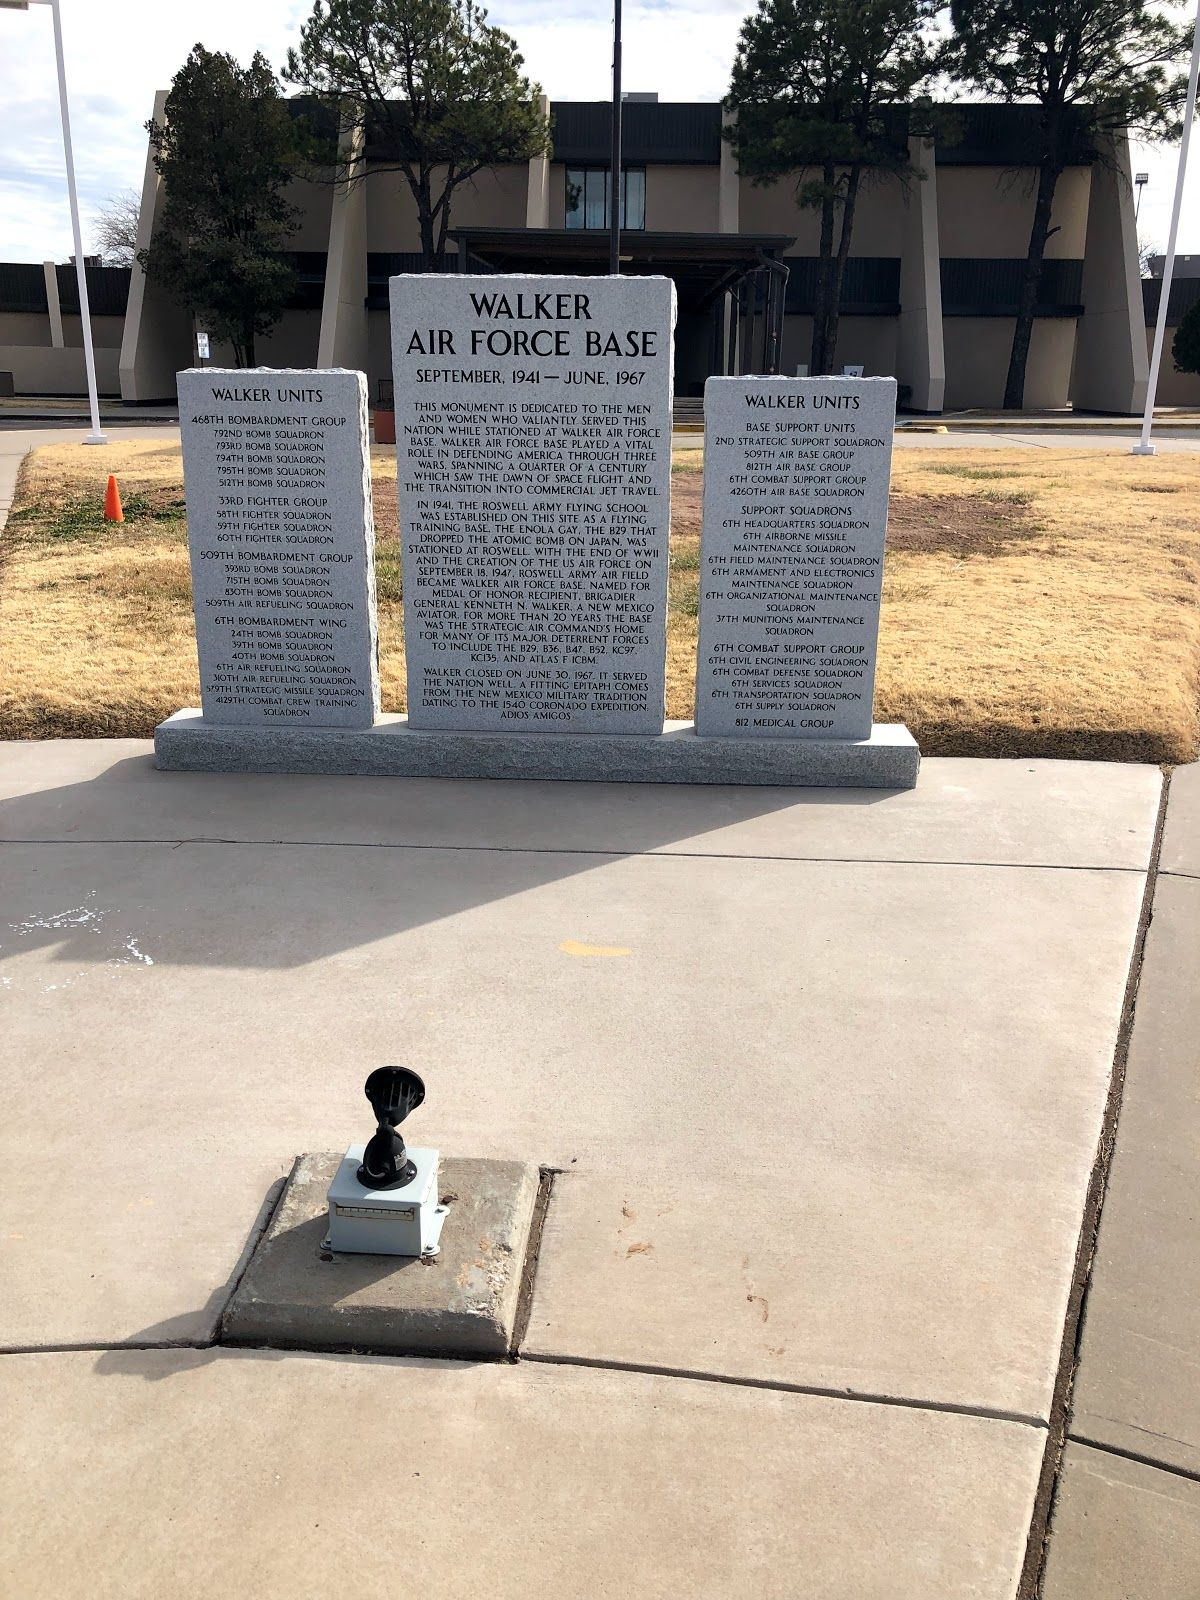 NM/Roswell/Walker AFB Museum Museum, Air force bases